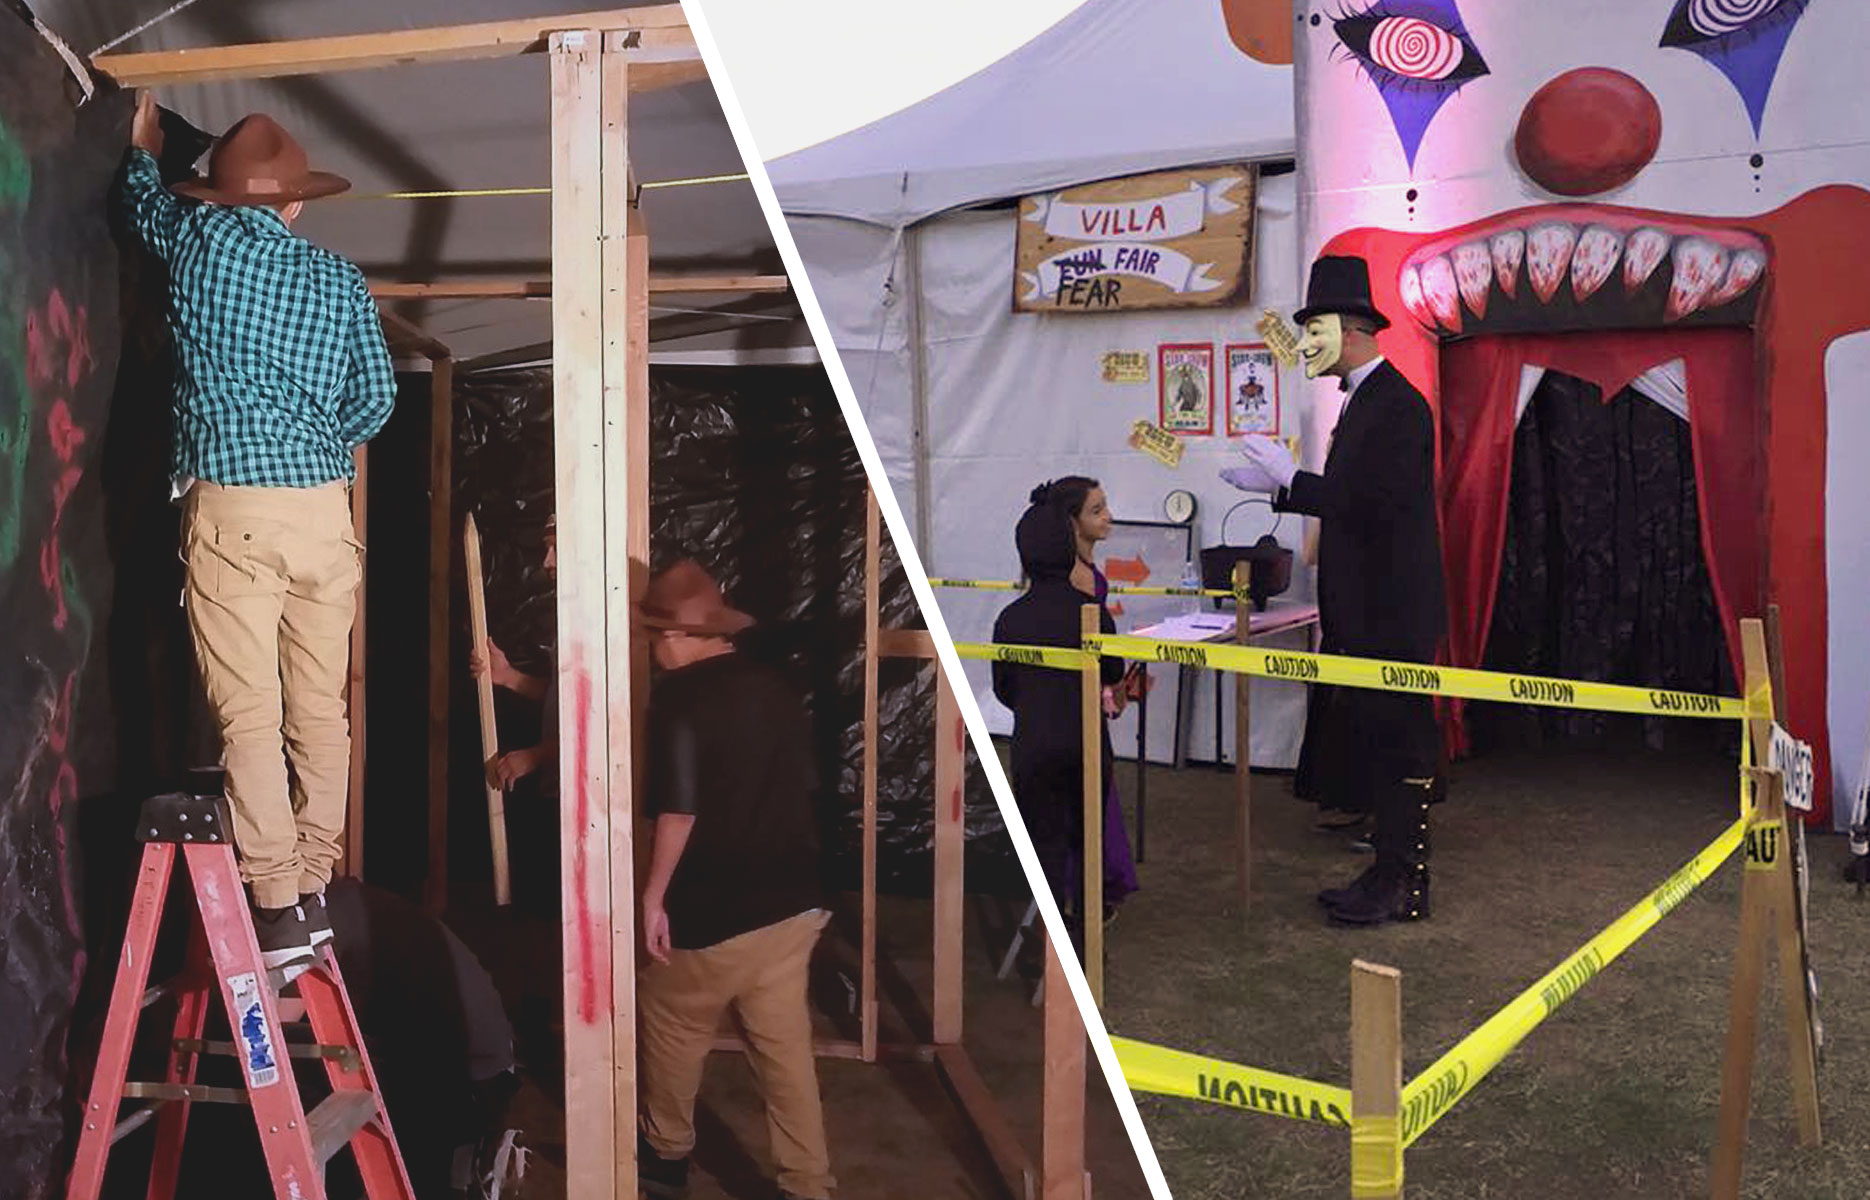 Western Window Systems Donates Lumber for School's Annual Haunted House Attraction